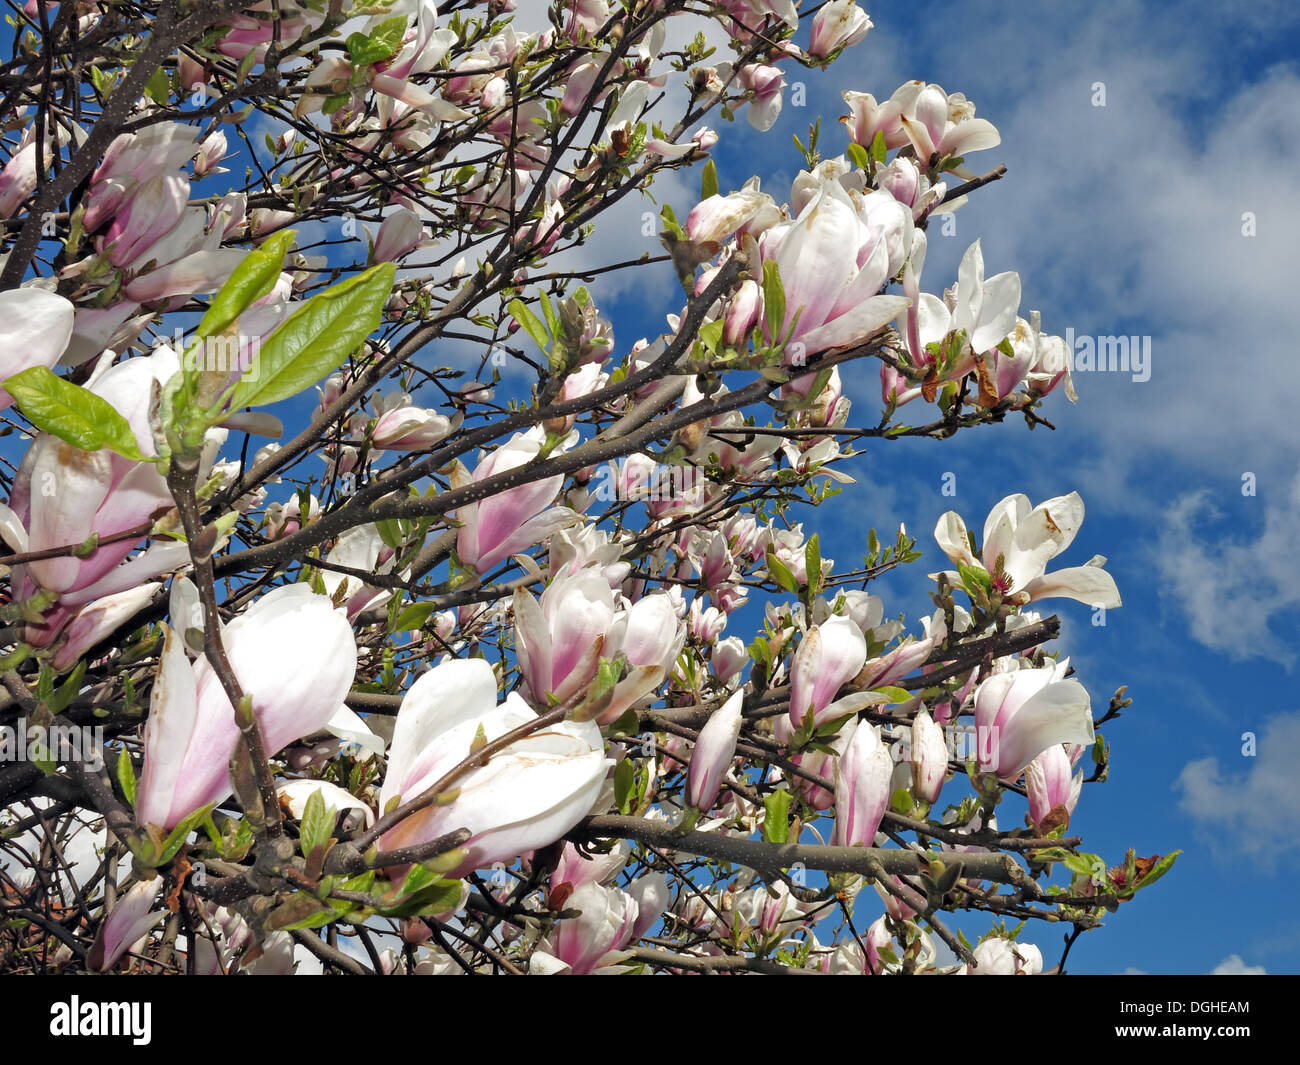 Europe,white,flower,flowers,sky,blue,warm,new,growth,flowering,plant,species,in,the,subfamily,Magnolioideae,of,the,family,Magnoliaceae.,It,is,named,after,French,botanist,Pierre,Magnol,Annona,dodecapetala,Society,Gotonysmith,Buy Pictures of,Buy Images Of